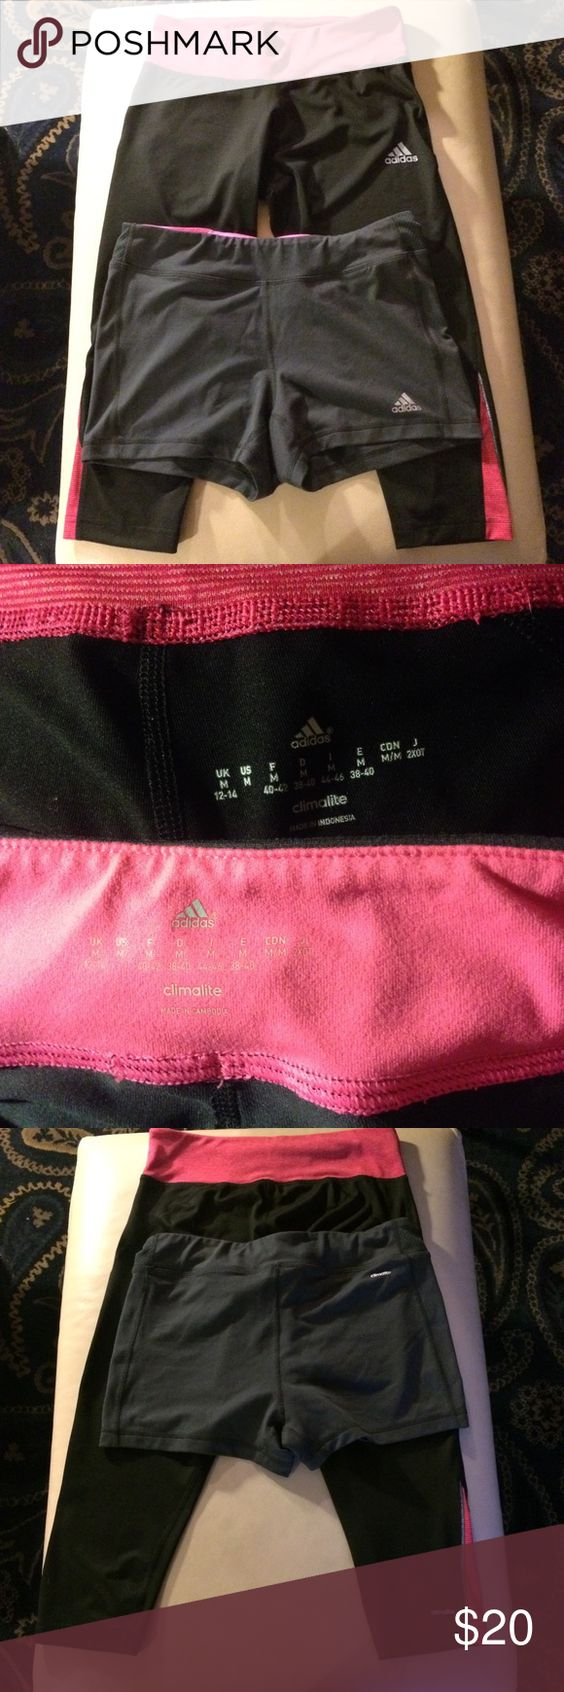 Adidas Climalite Capri Leggings and Shorts Tights Adidas Climalite workout capri tights and shorts tights. Capris are black with pink and silver accents, shorts are gray with pink accents. Shorts have little media pocket for your key or gym pass, etc. These are both in great condition, capris worn twice and shorts just washed and tried on once. Both size Medium. Adidas Pants Leggings